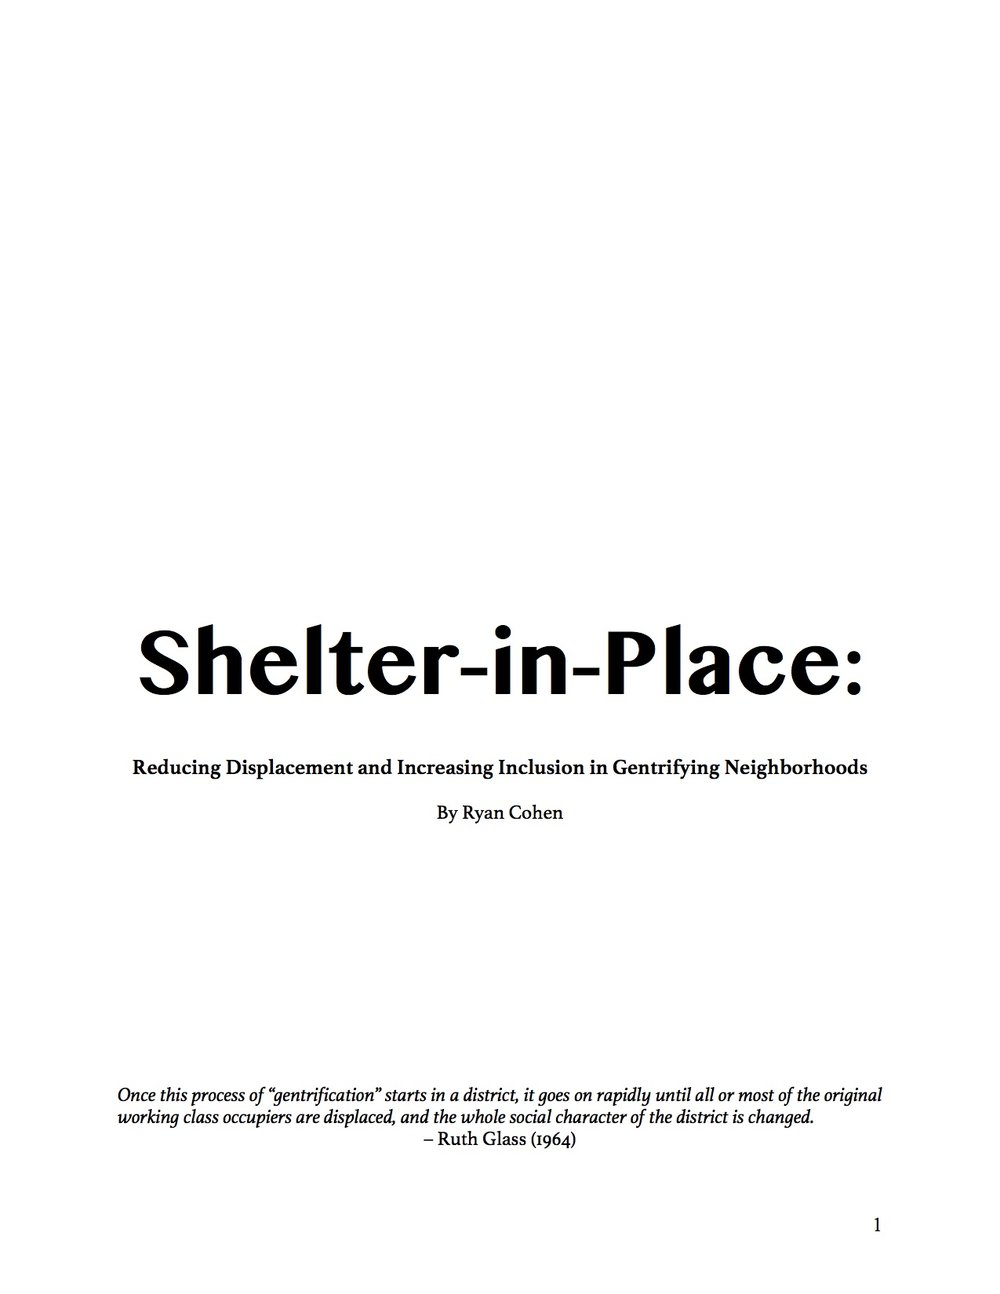 Shelter-in-Place: Reducing Displacement and Increasing Inclusion in Gentrifying Neighborhoods